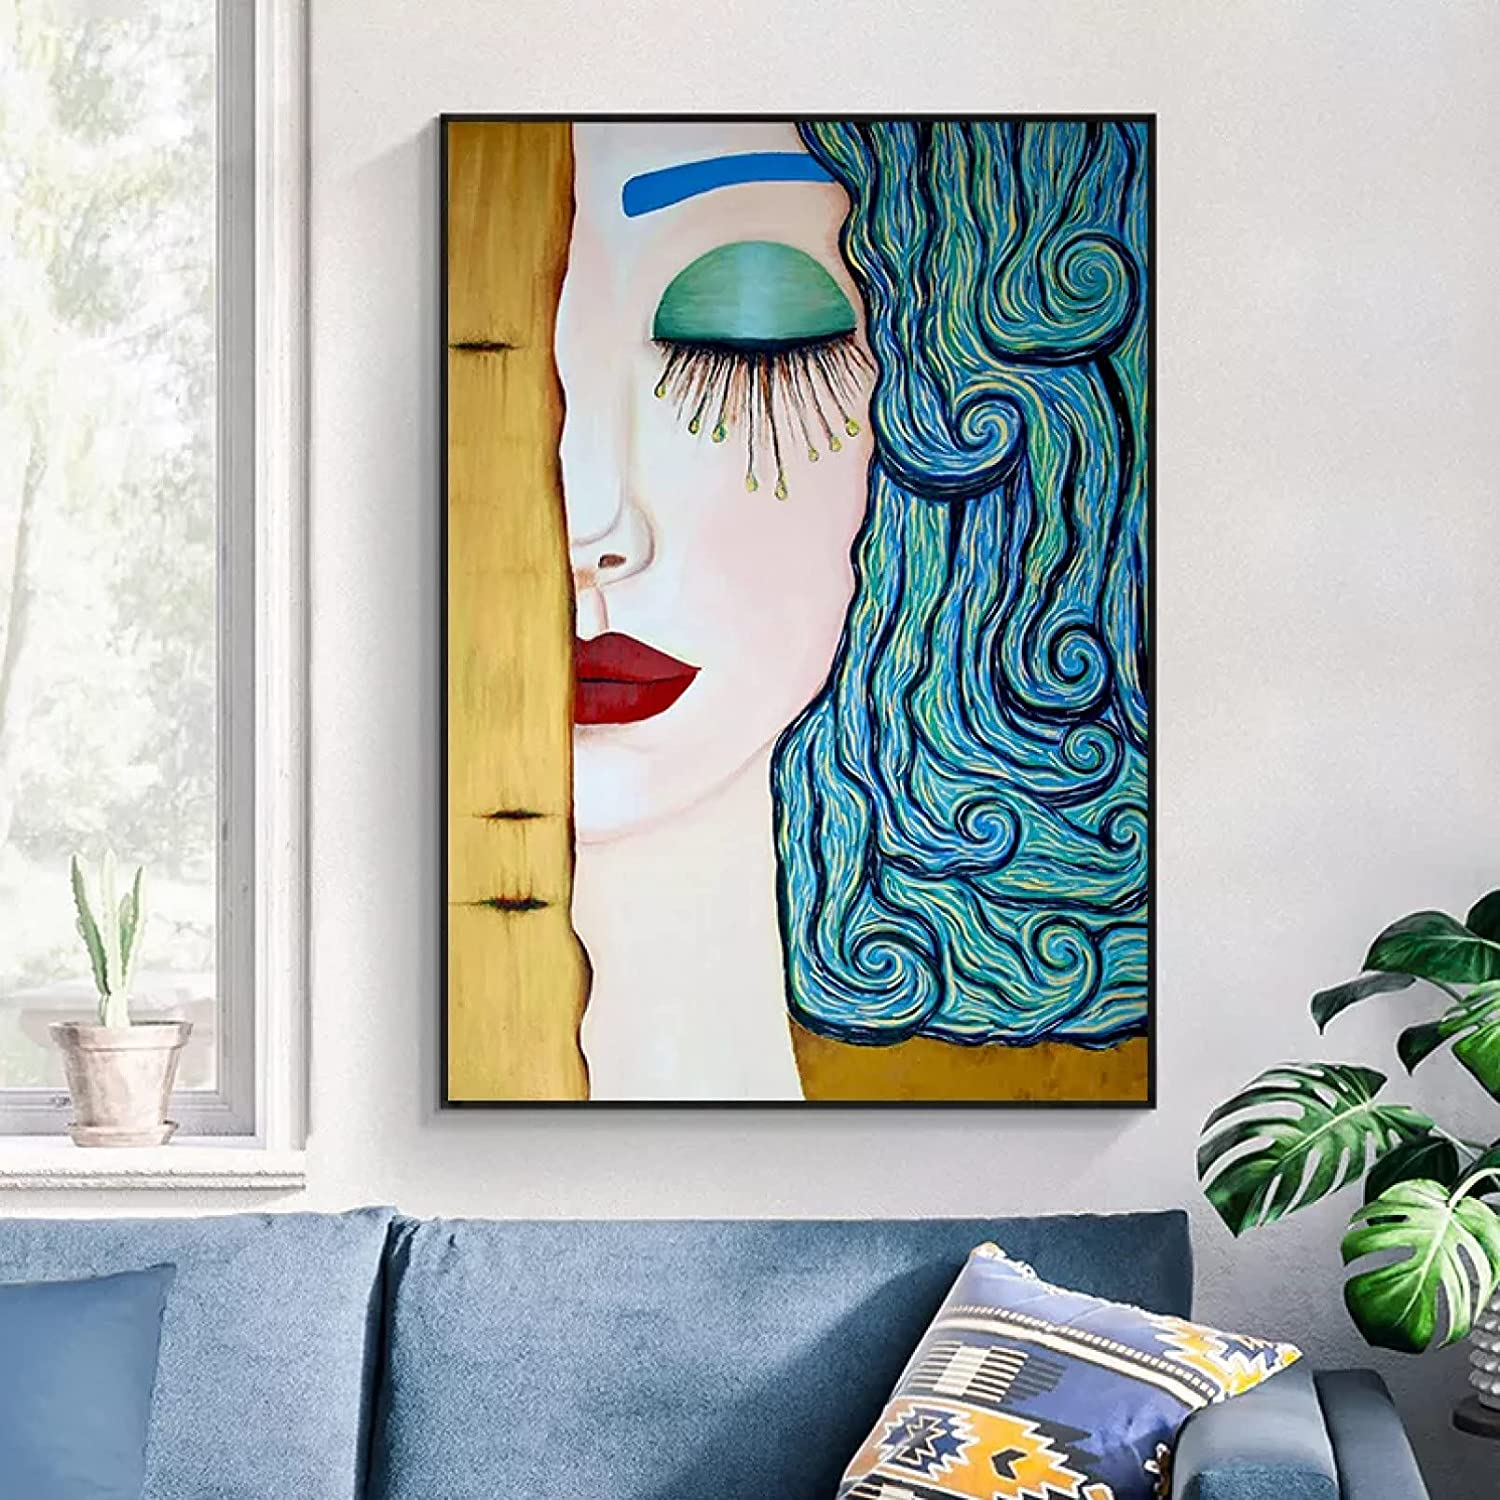 FOMBV Wall Art Canvas Decorative Blue Wa Eyelashes Large discharge sale Painting Hair All items free shipping